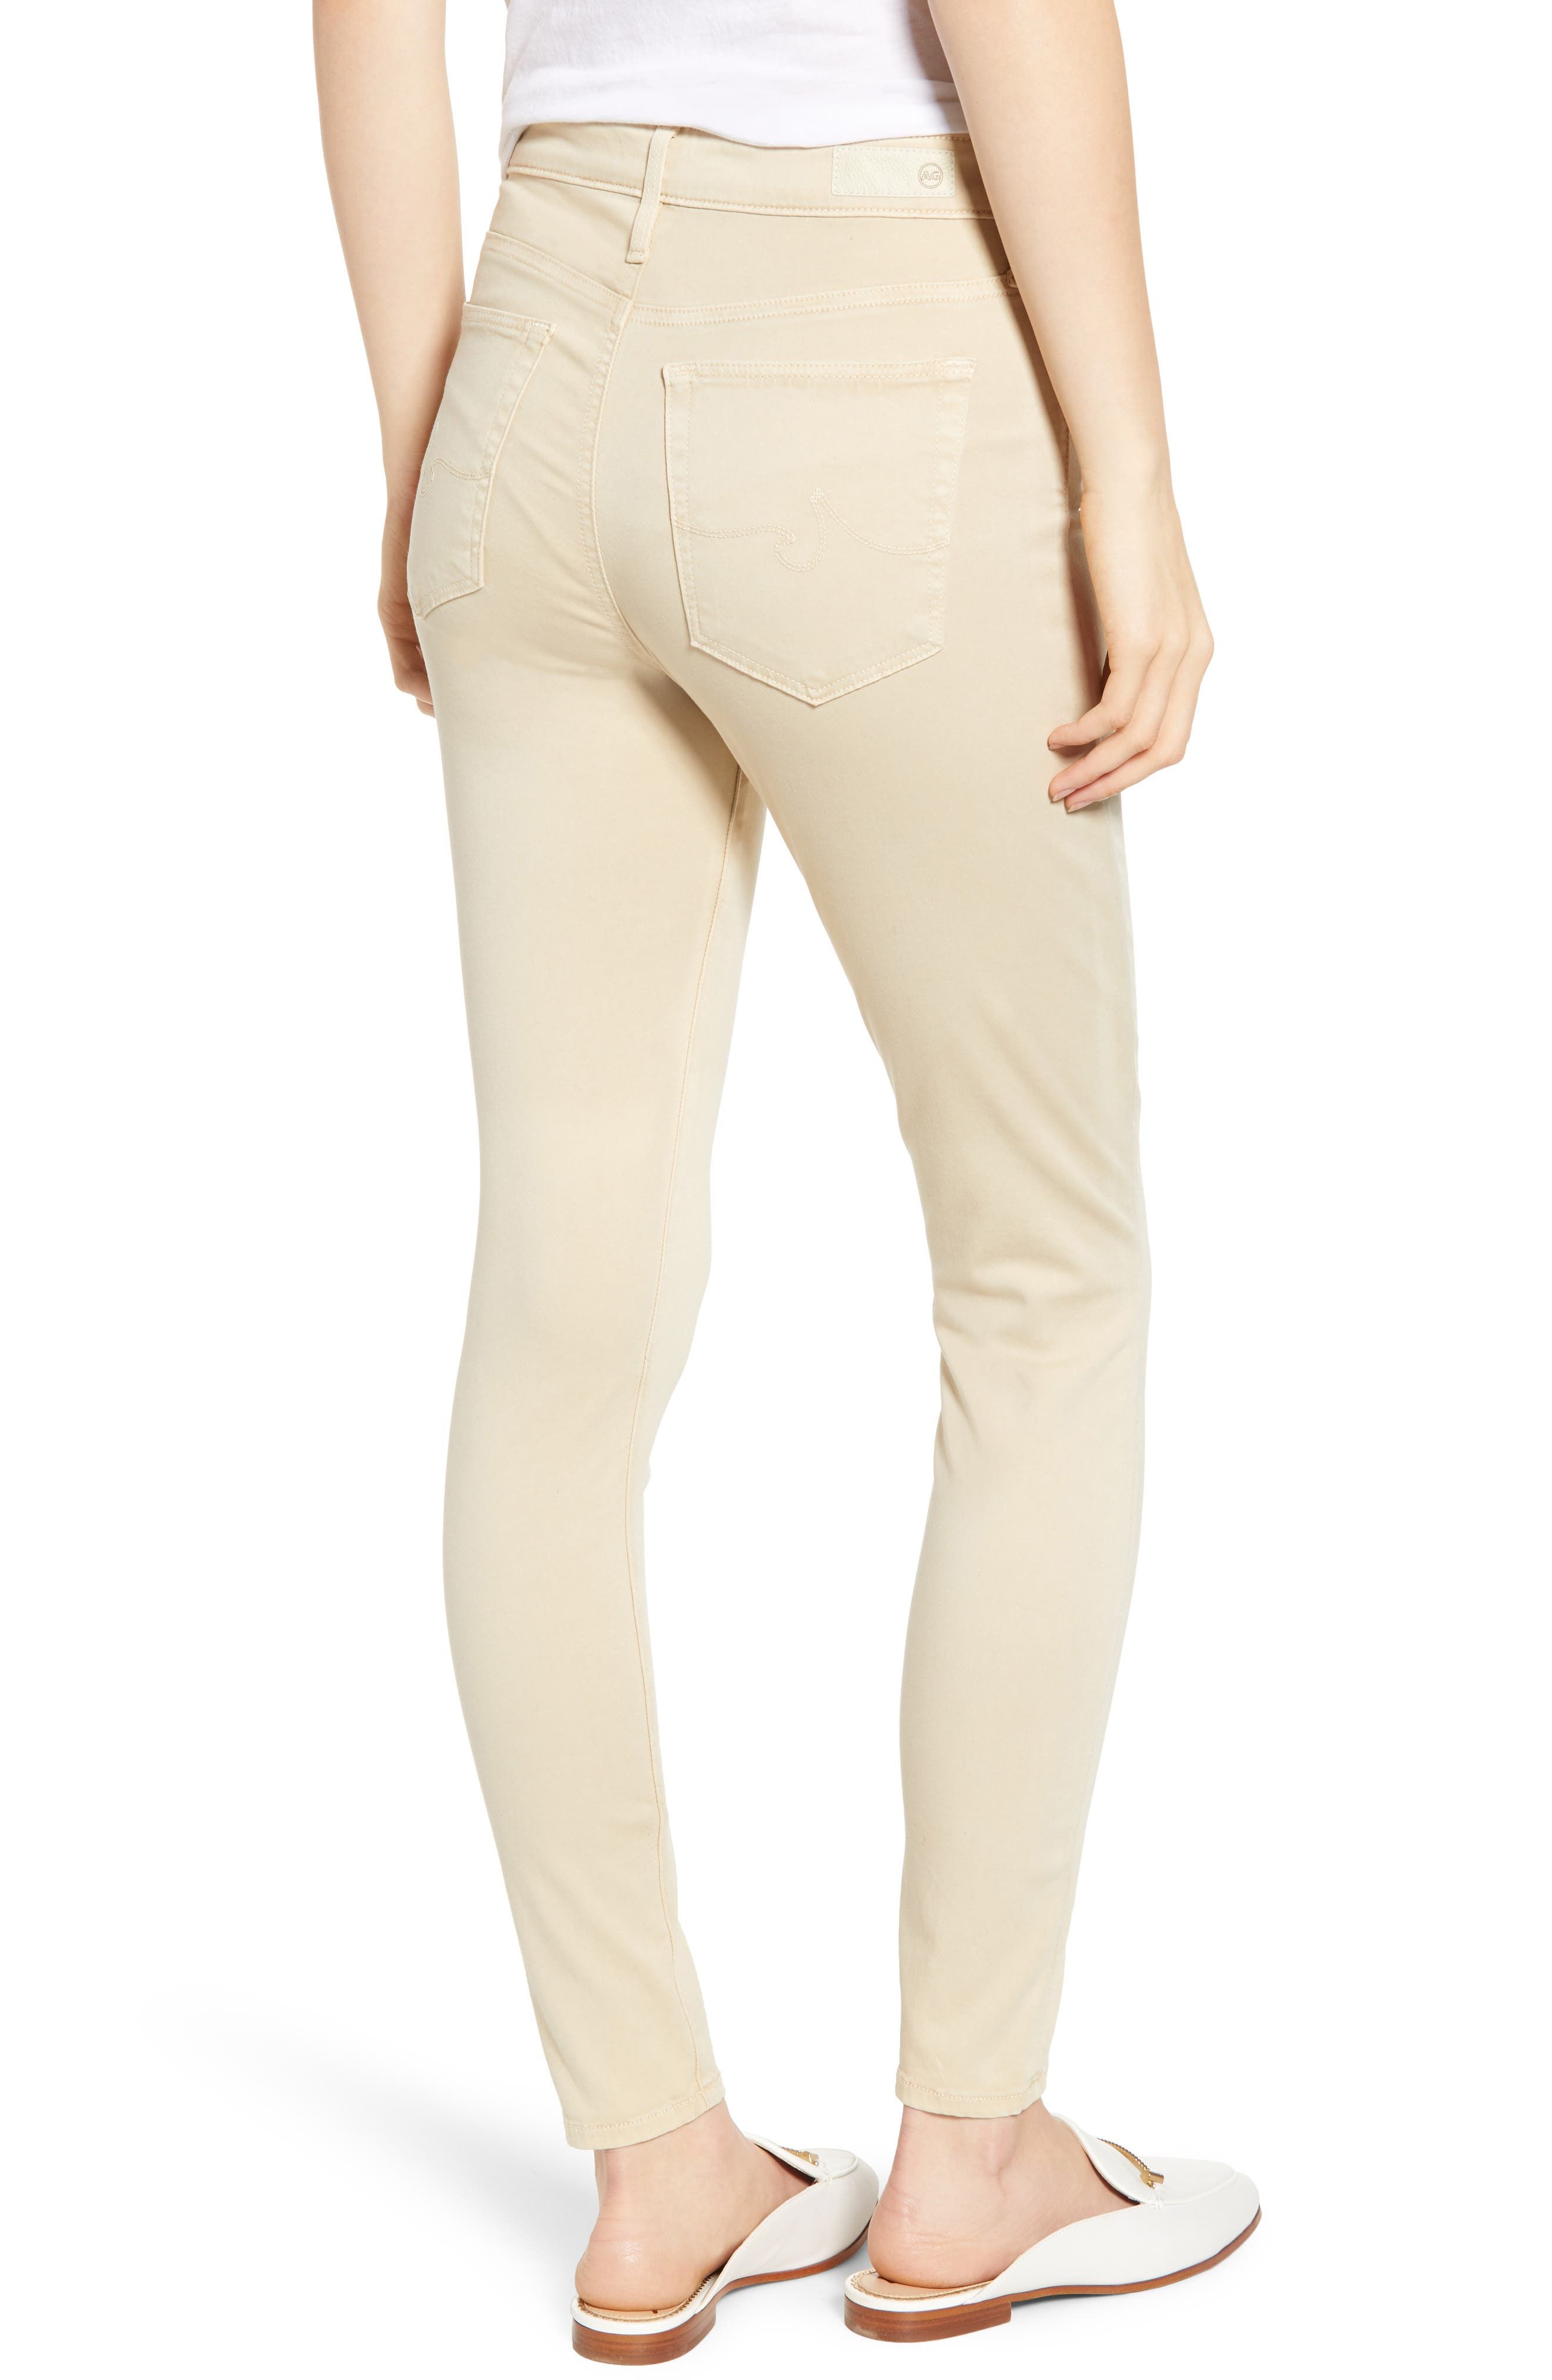 Farrah High Waist Ankle Skinny Jeans,                             Alternate thumbnail 2, color,                             SULFUR FRESH SAND